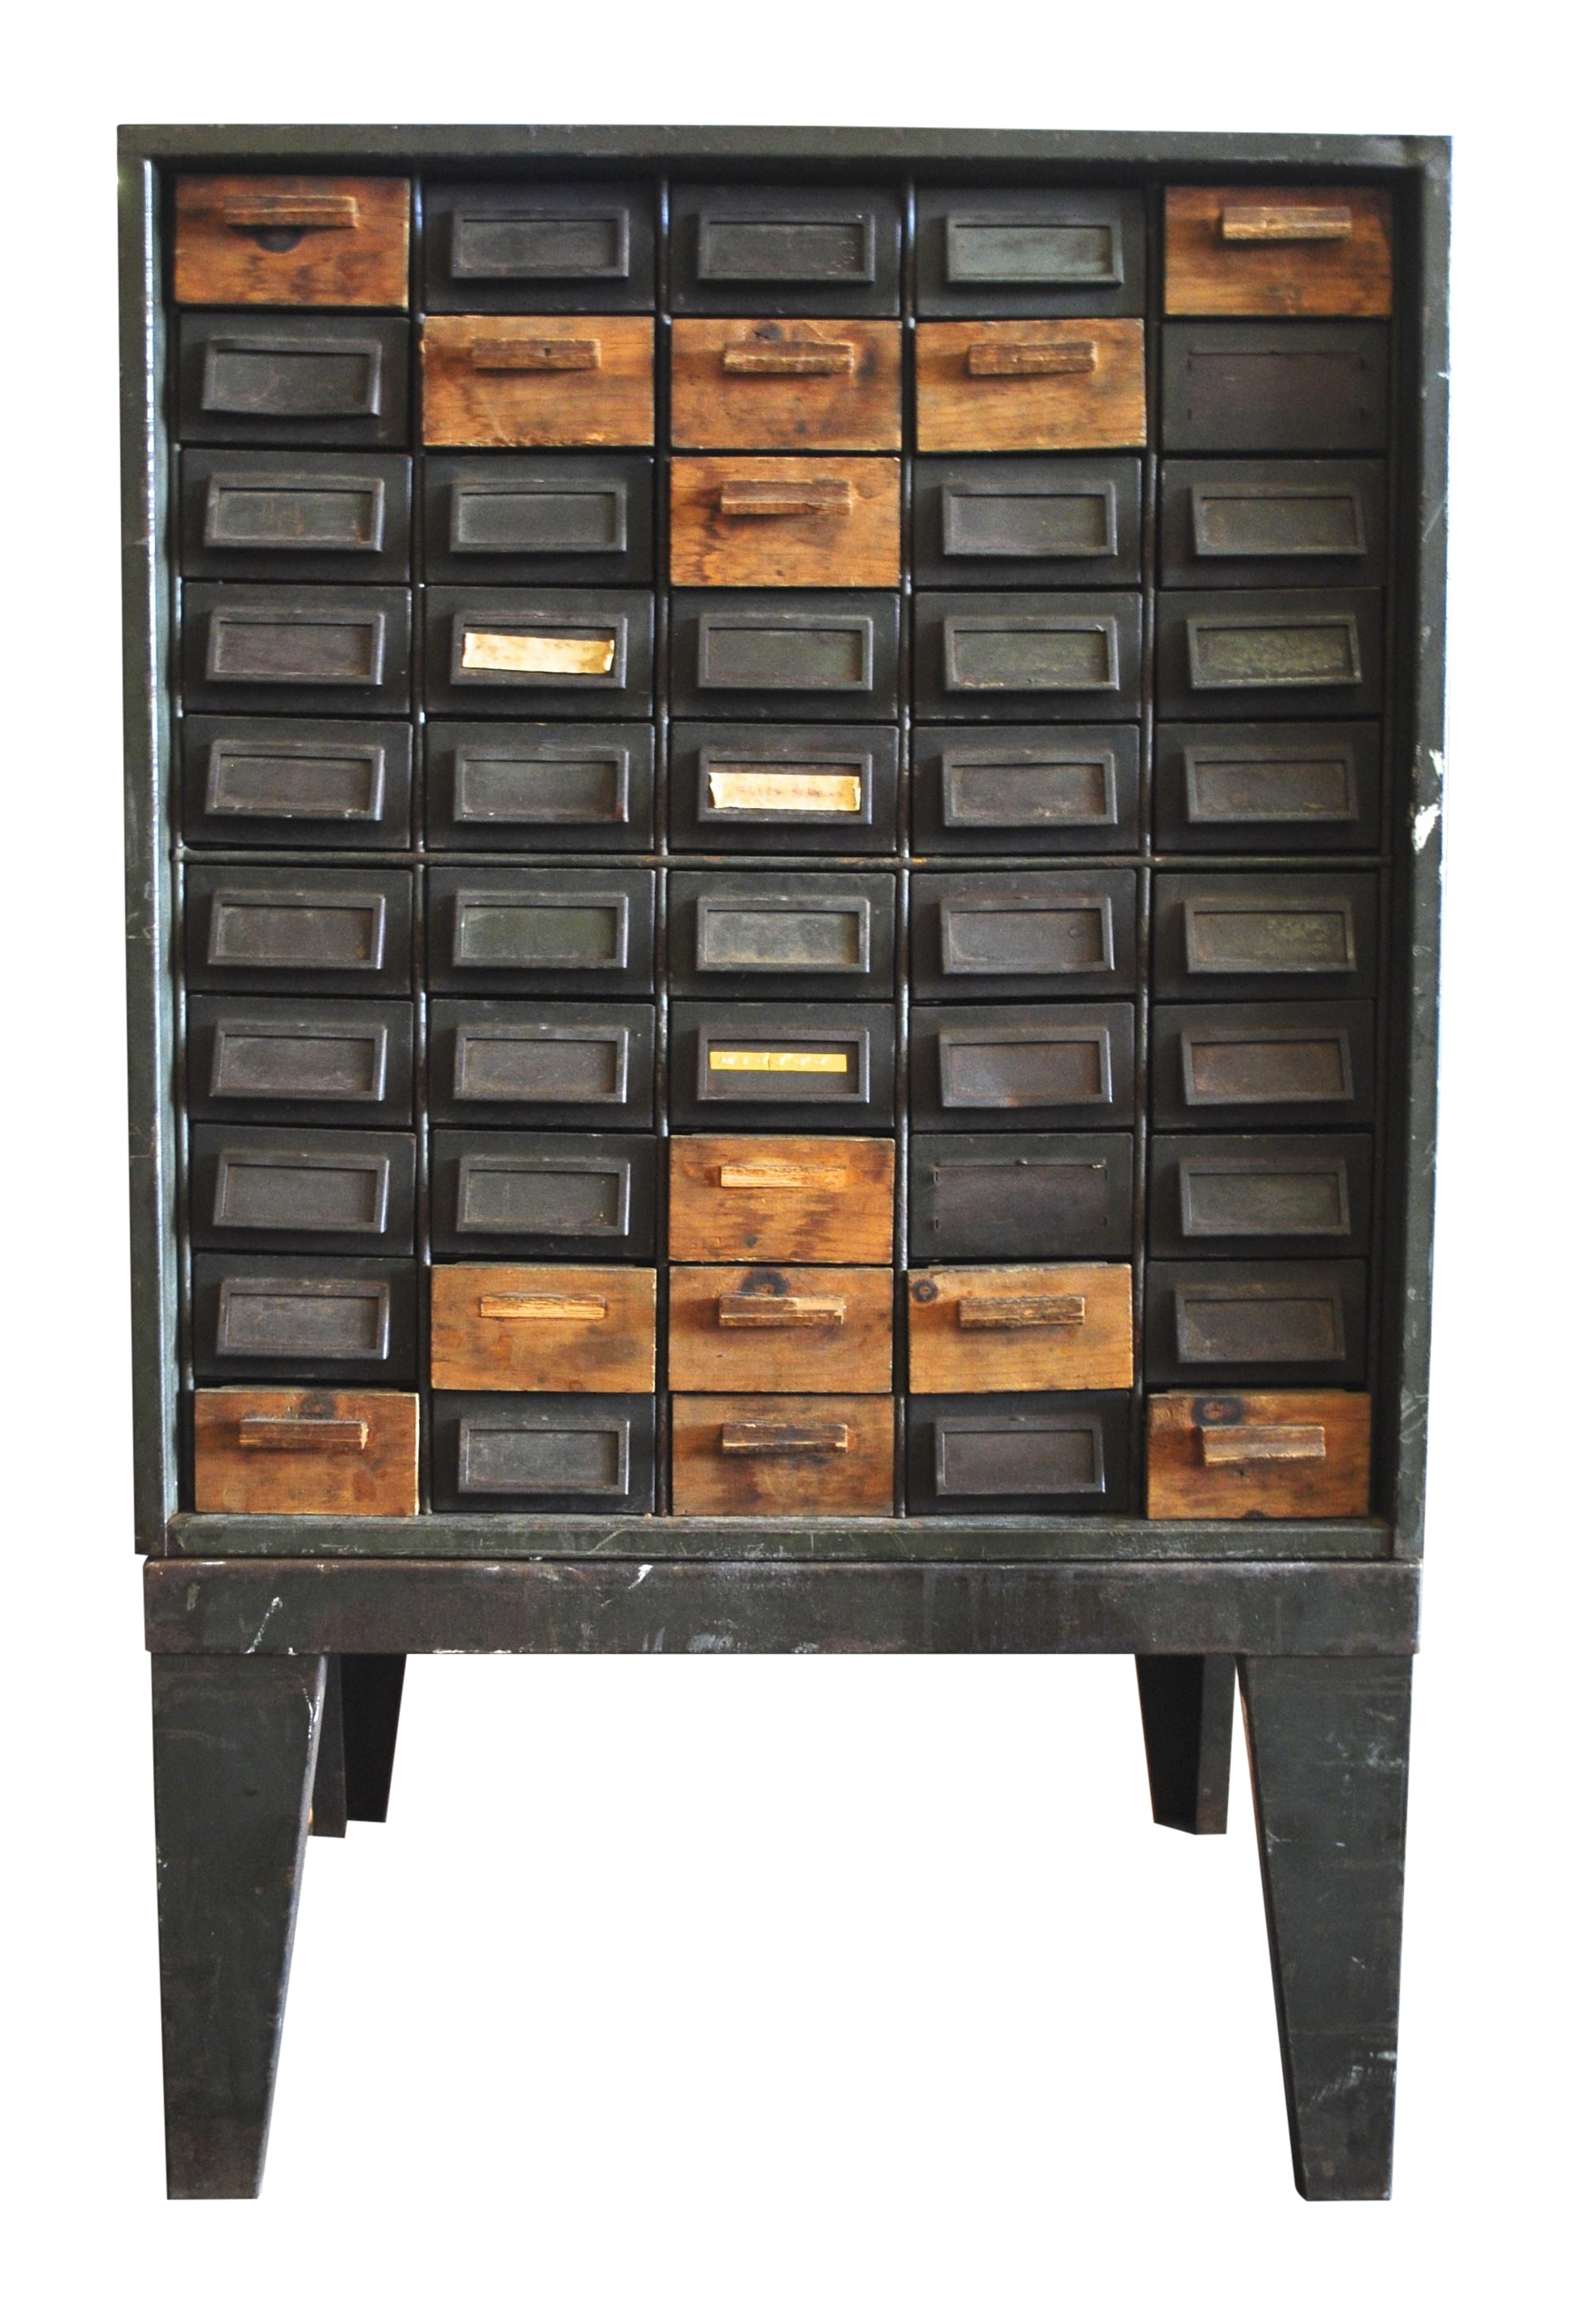 This Awesome Industrial Metal Small Parts Storage Cabinet With 50 Small Drawers Craft Storage Cabinets Vintage Industrial Furniture Vintage Industrial Small storage cabinet with drawers